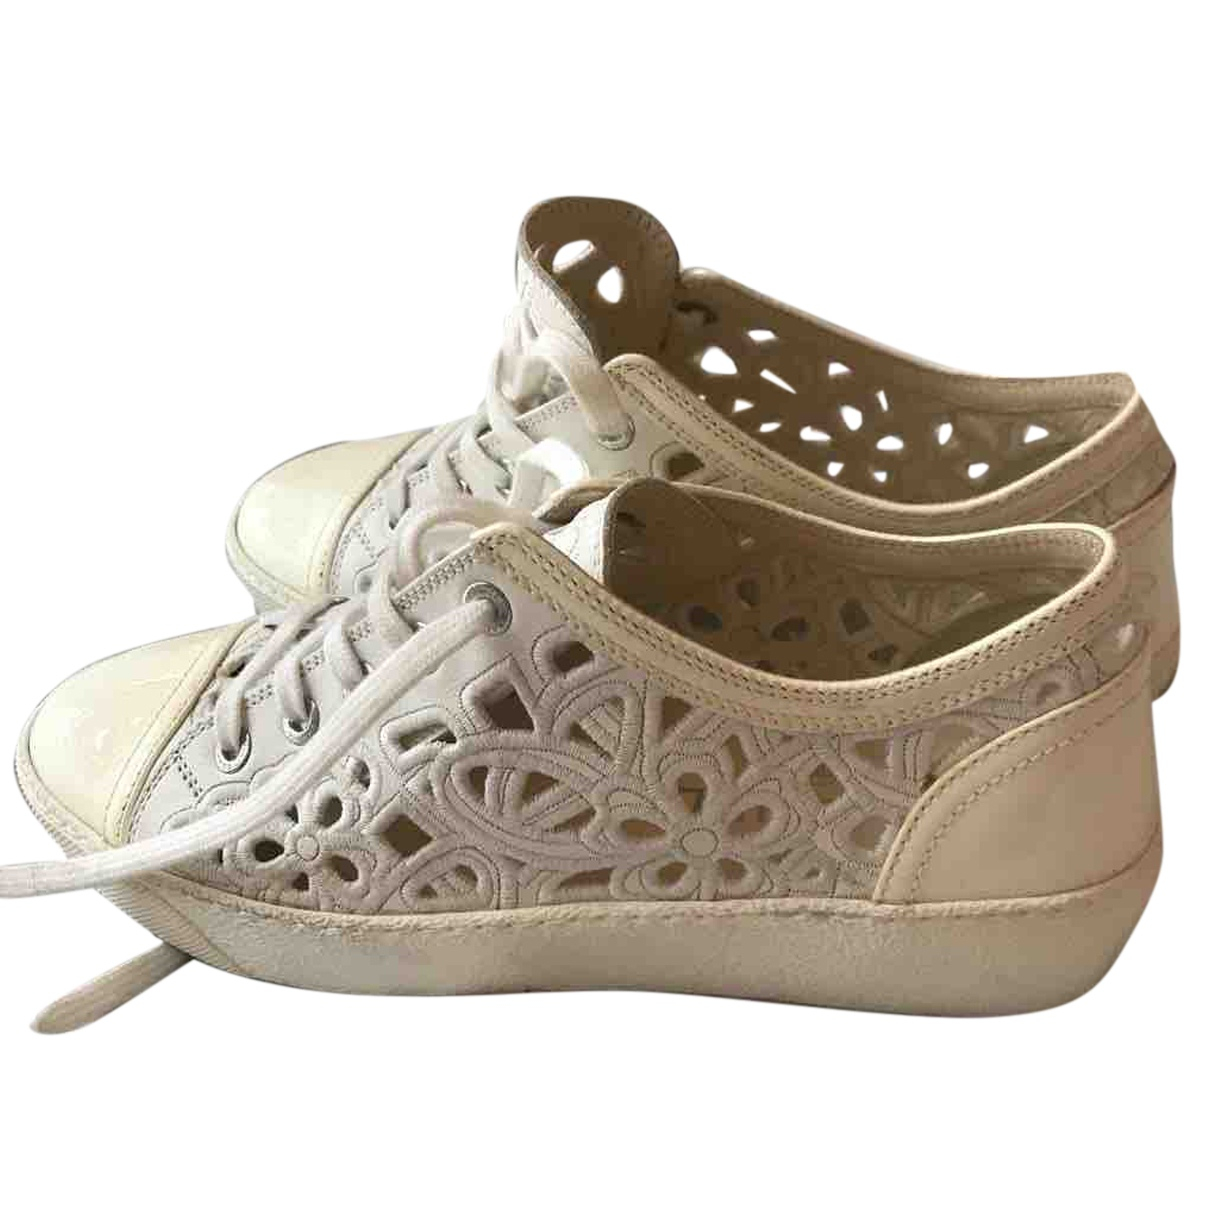 Chanel N White Cloth Trainers for Women 36 EU